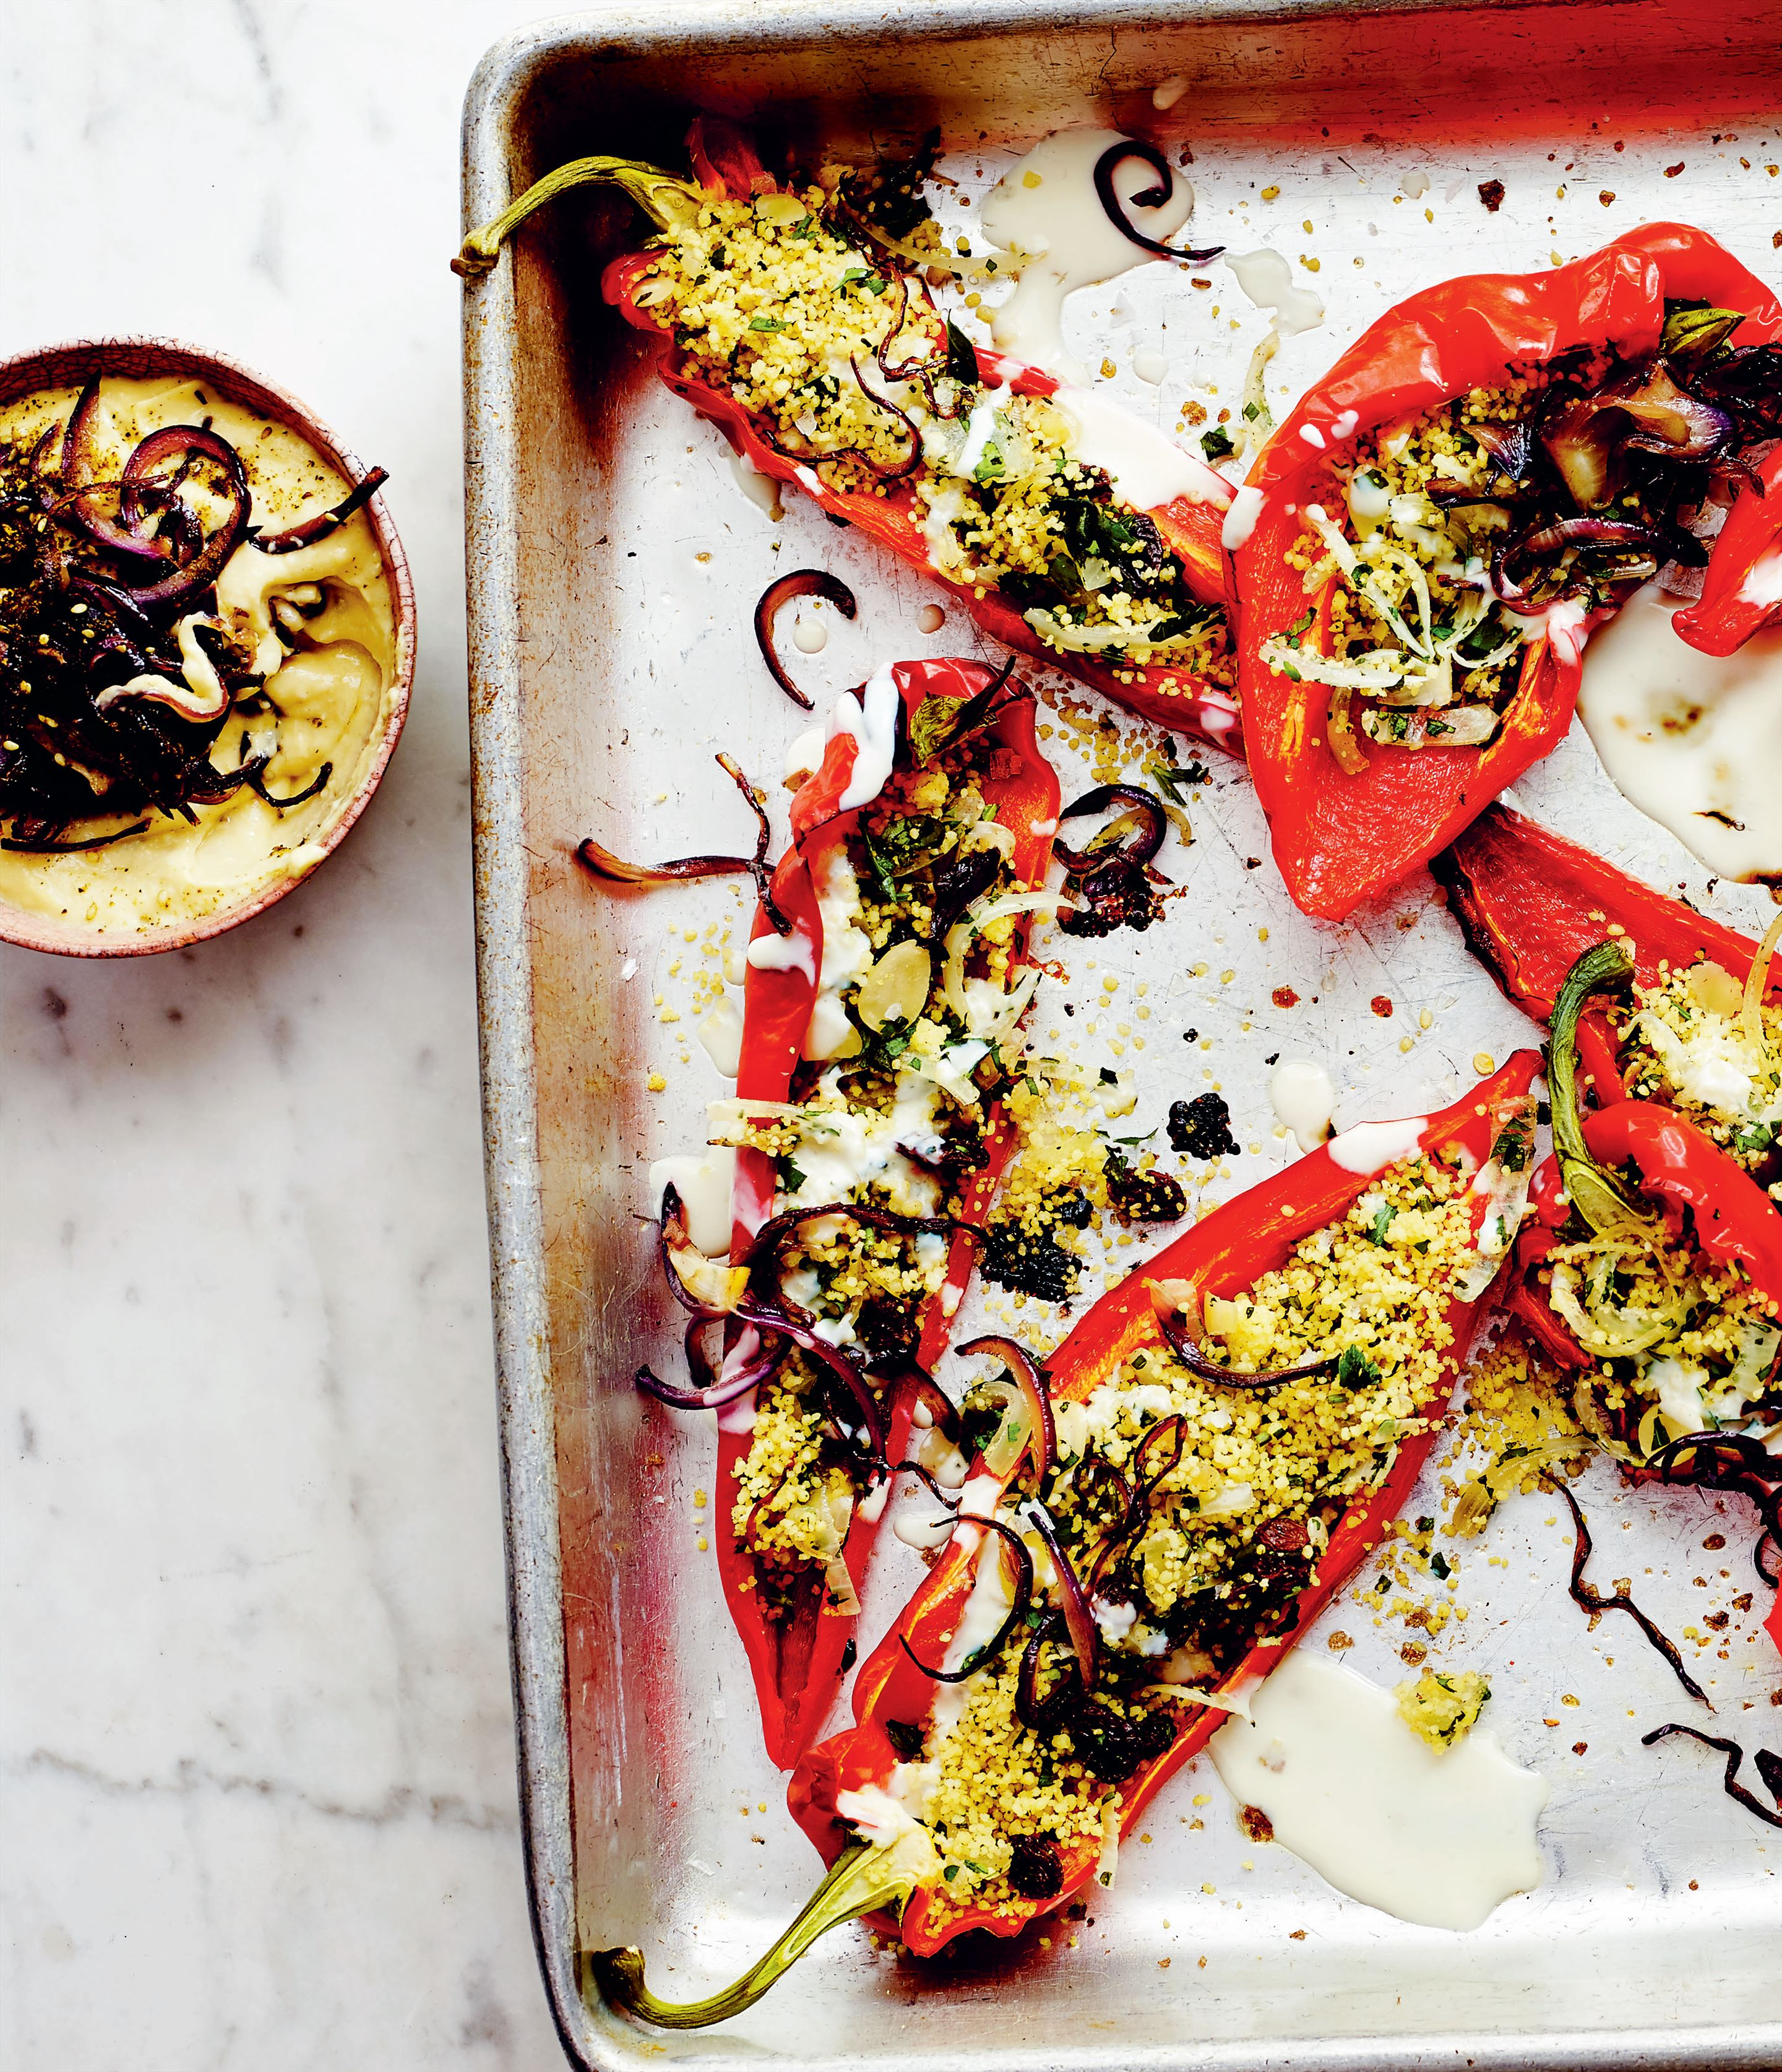 Sweet-stuffed ramiro peppers with salted lemon yoghurt